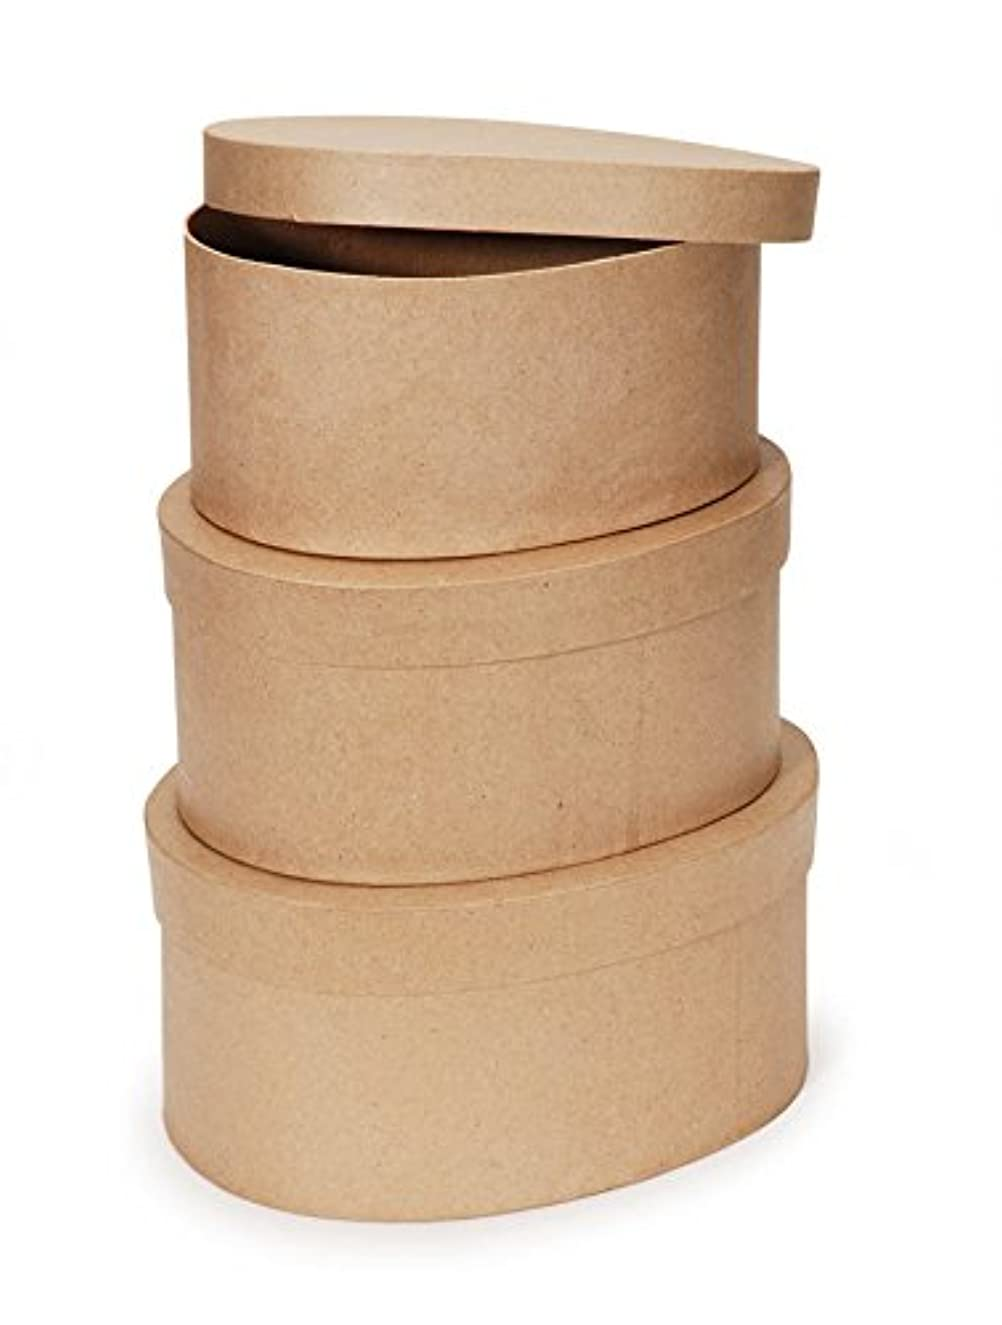 "Darice Paper Mache Craft Boxes – 8"", 9"" and 10"" Oval Boxes with Lids – Sturdy Boxes Come Nested Inside Each Other – Perfect for Decorating – Create Card Boxes, Centerpieces and More, Set of 3 olkcyzvutofpvm"